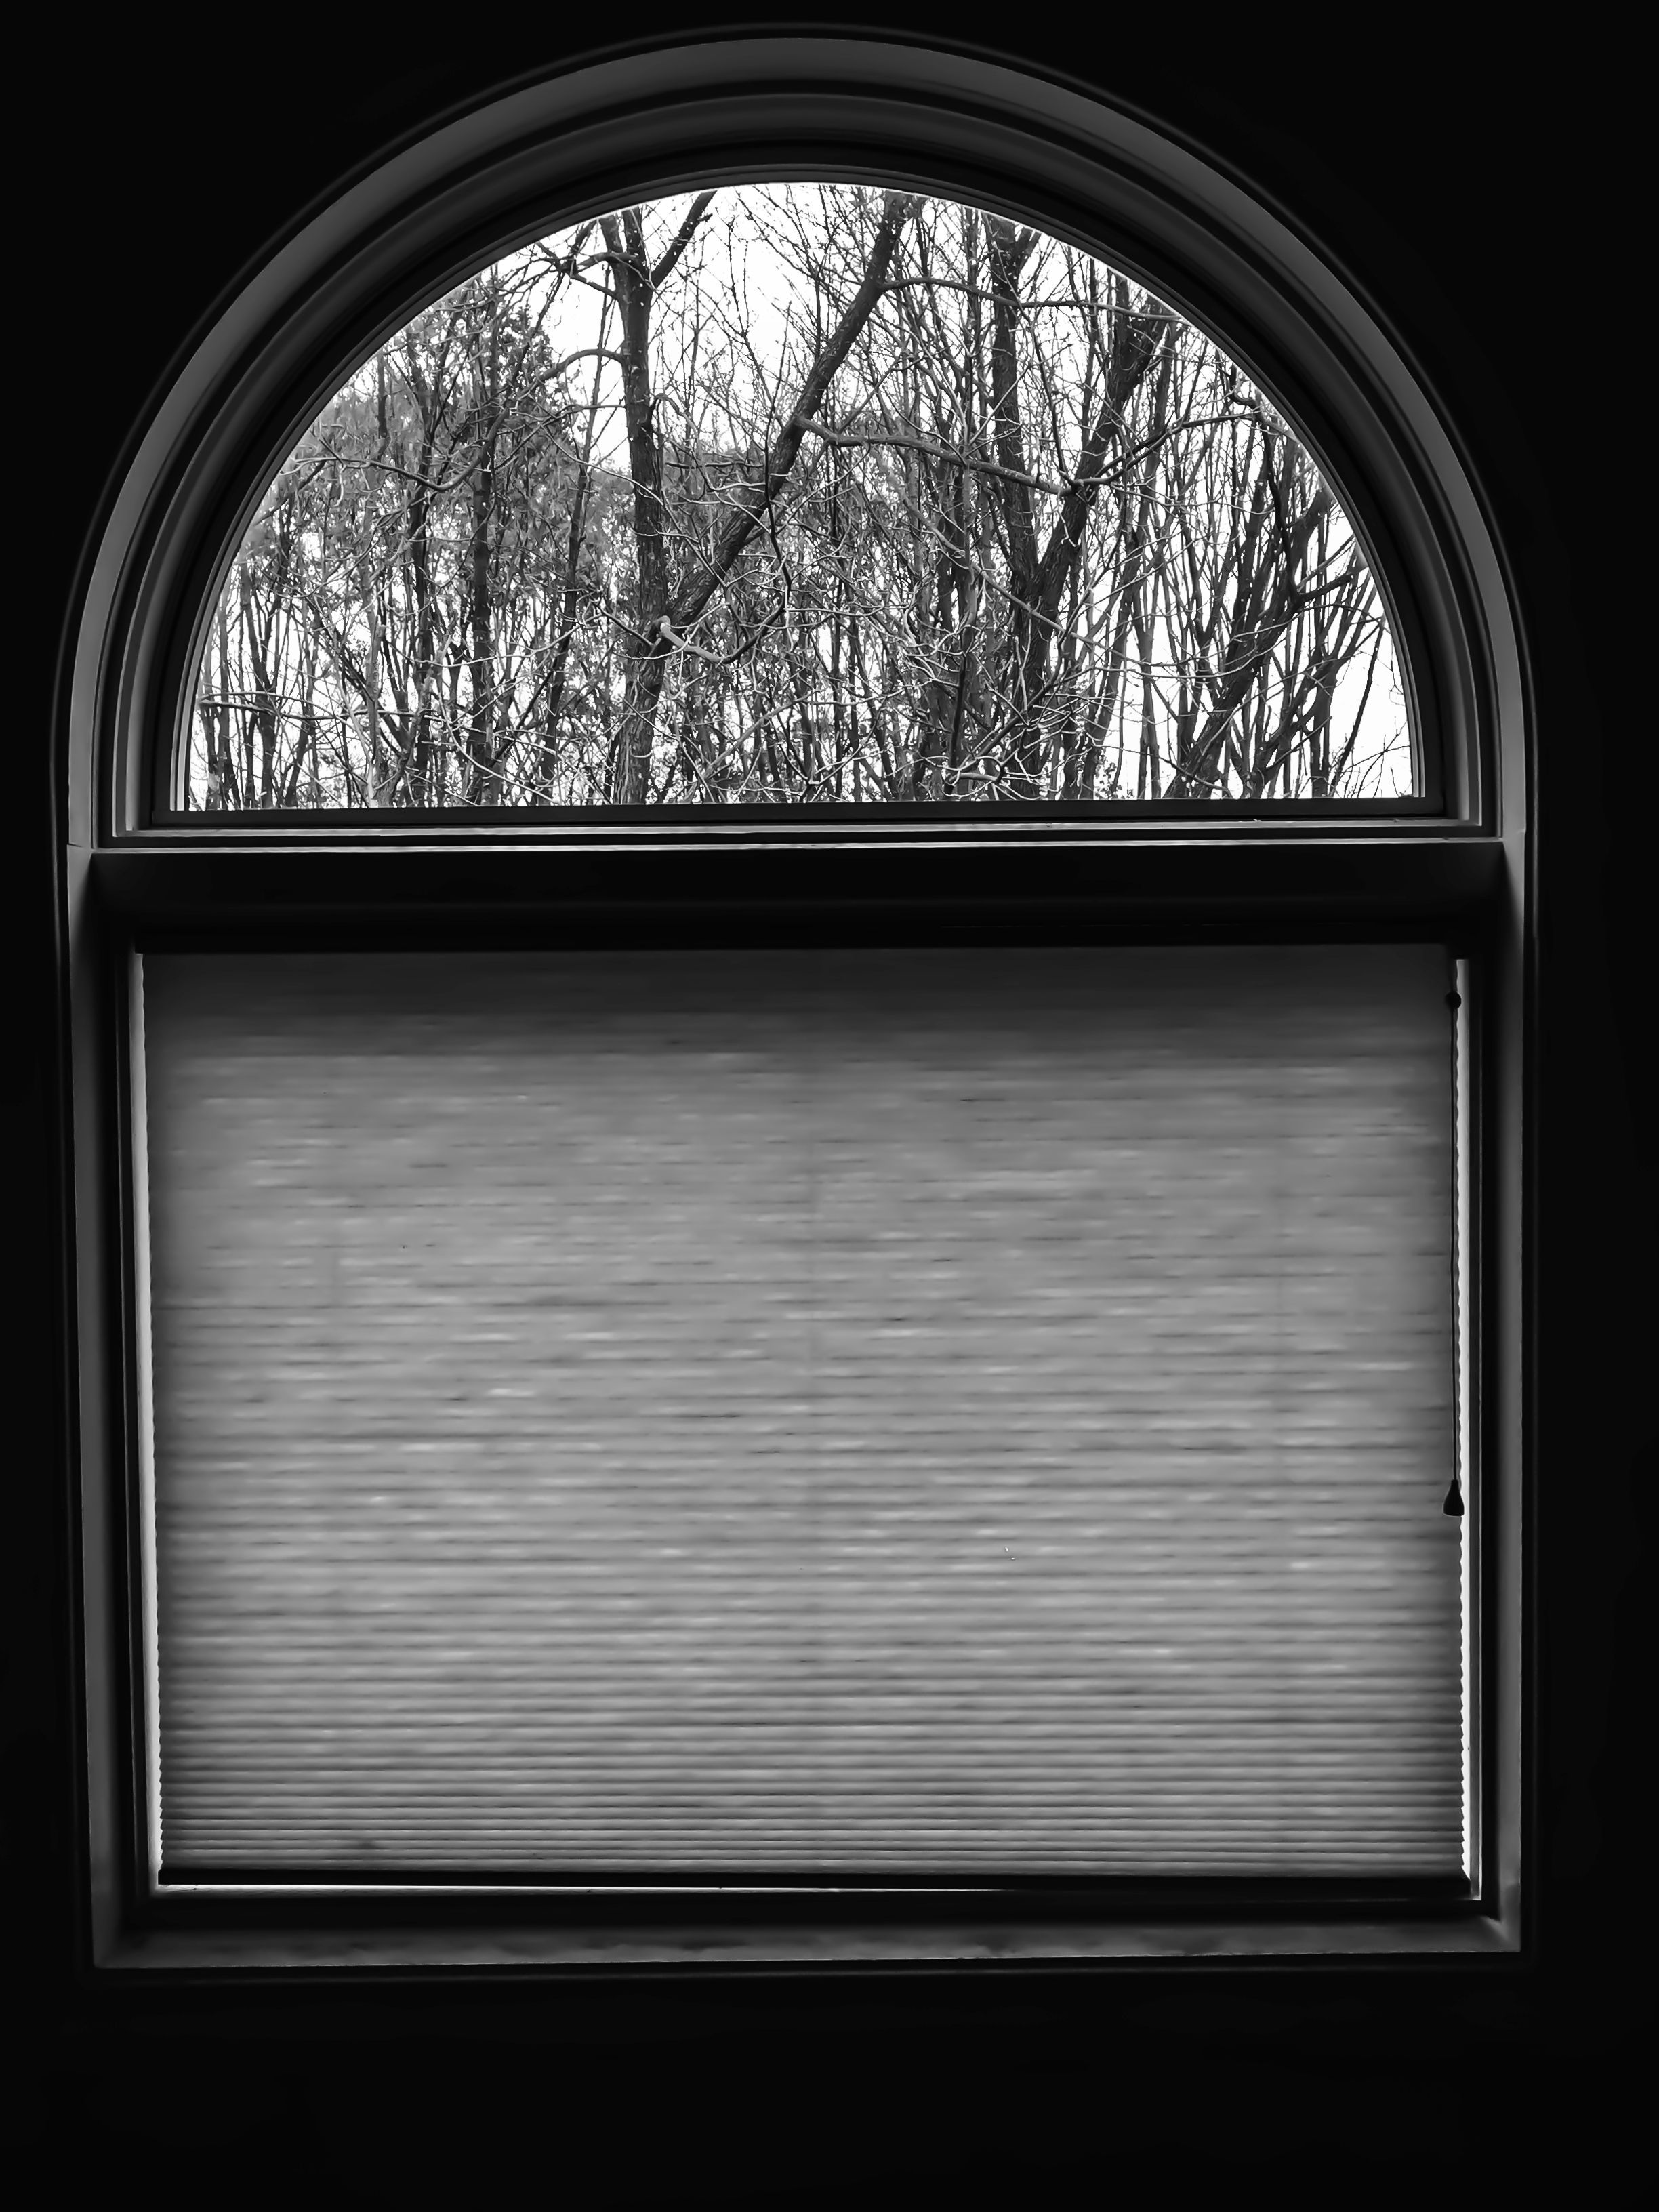 She Came In Through The Bathroom Window Bathroom Windows Windows Photography